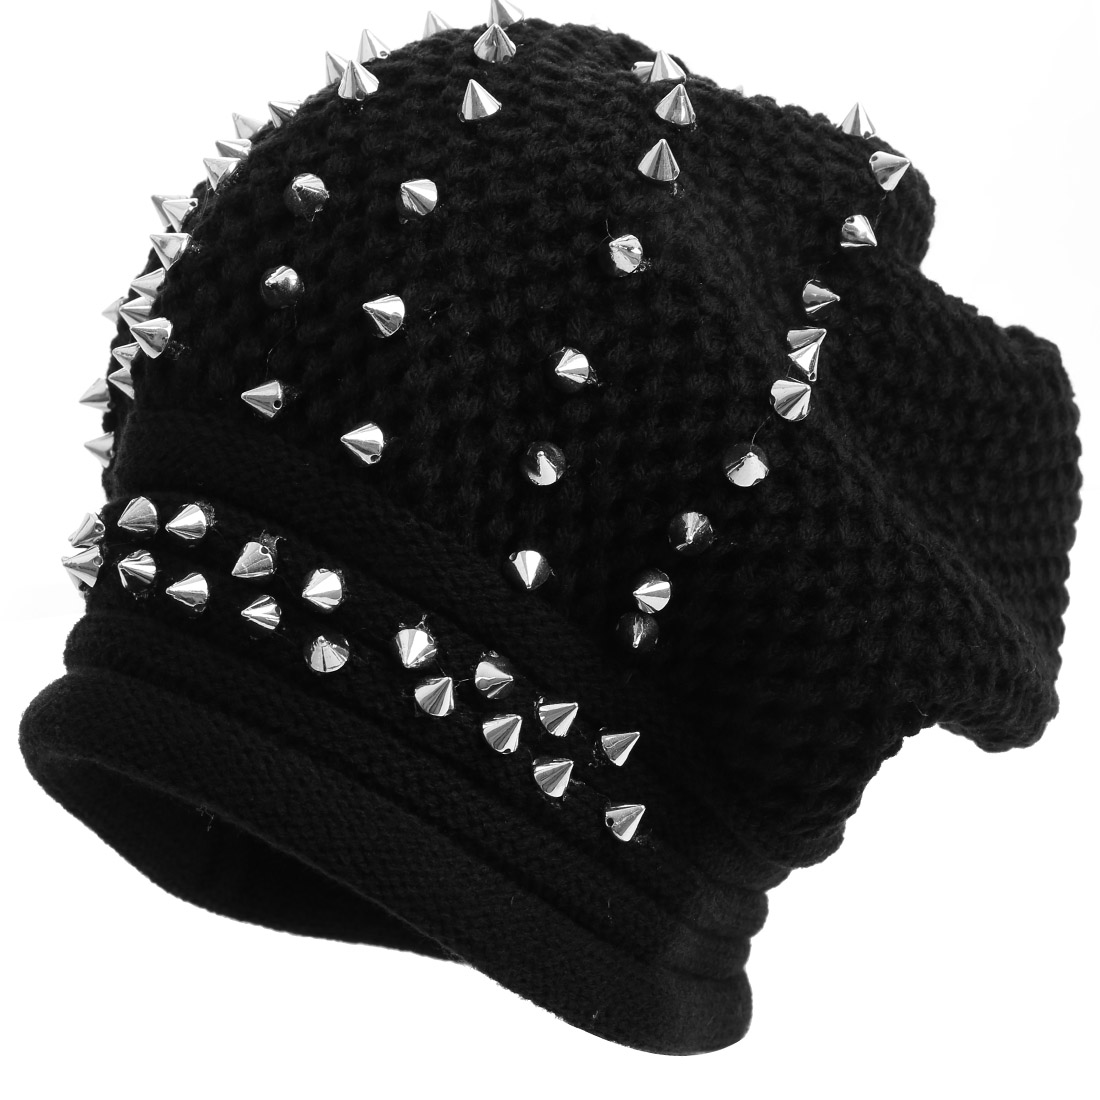 Men Crochet Knitting Stylish Black Silver Tone Beanie Hat